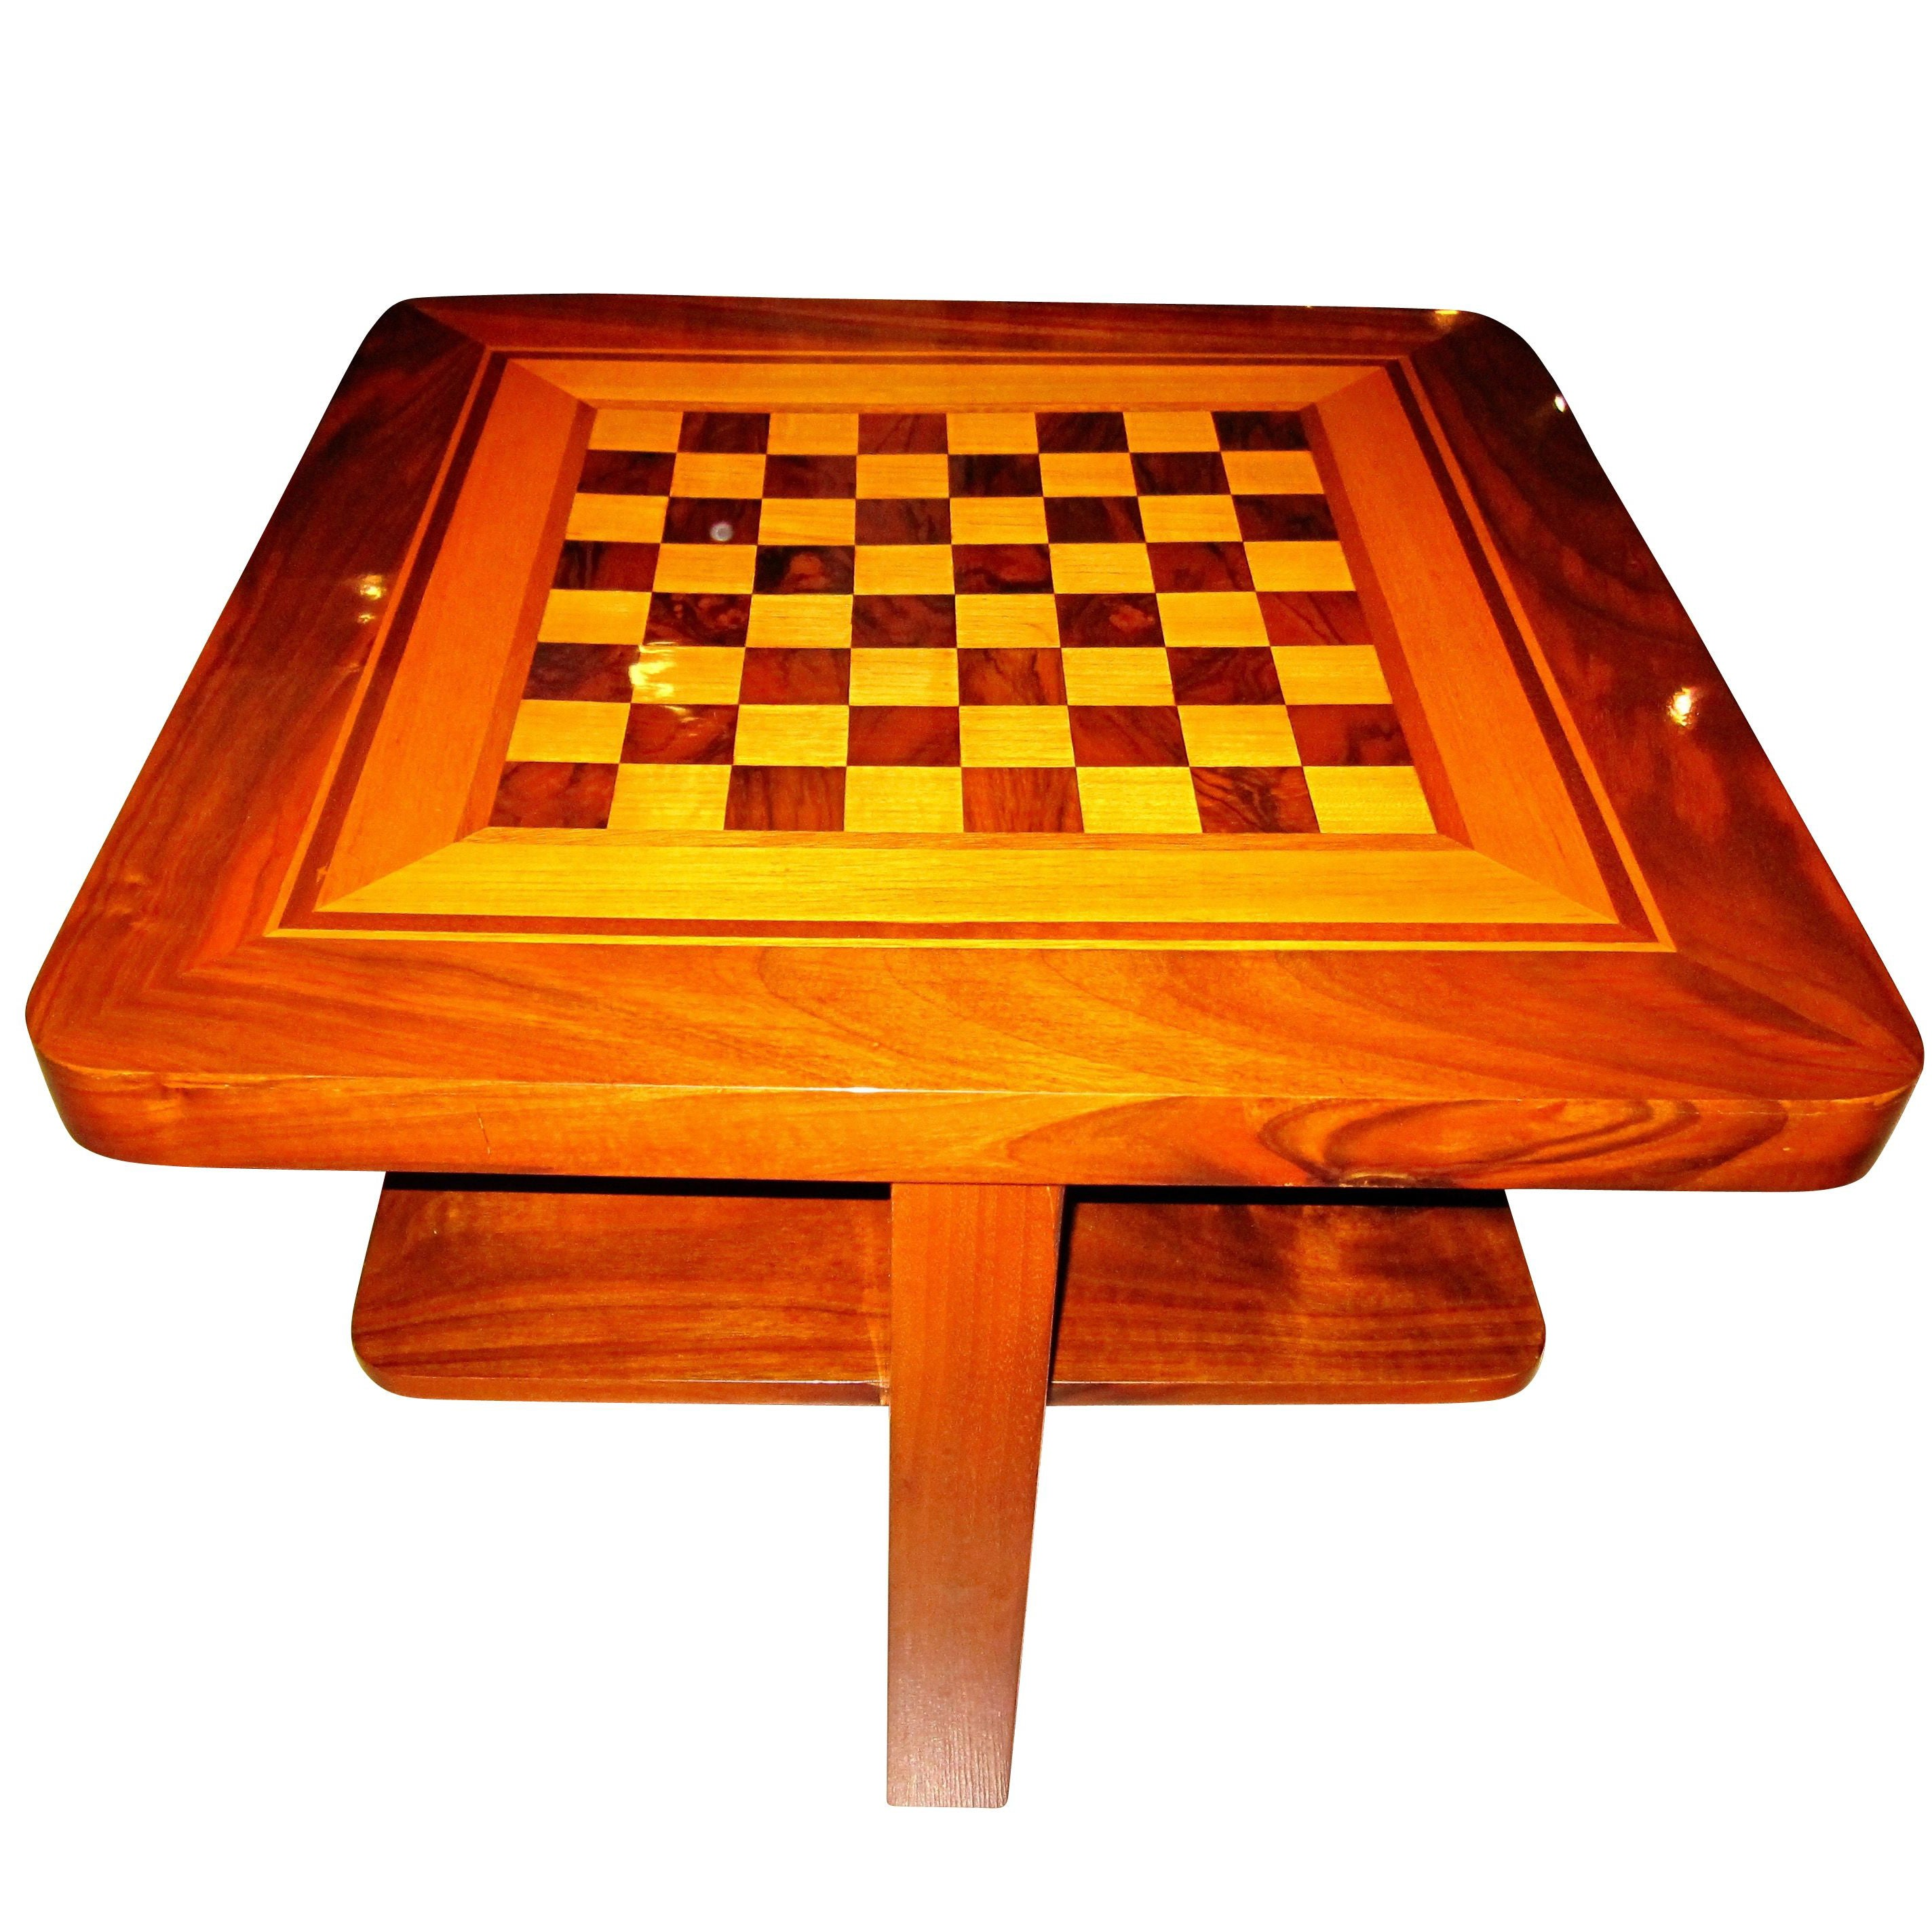 Chess Table Bauhaus Chess Table East Germany Circa 1930